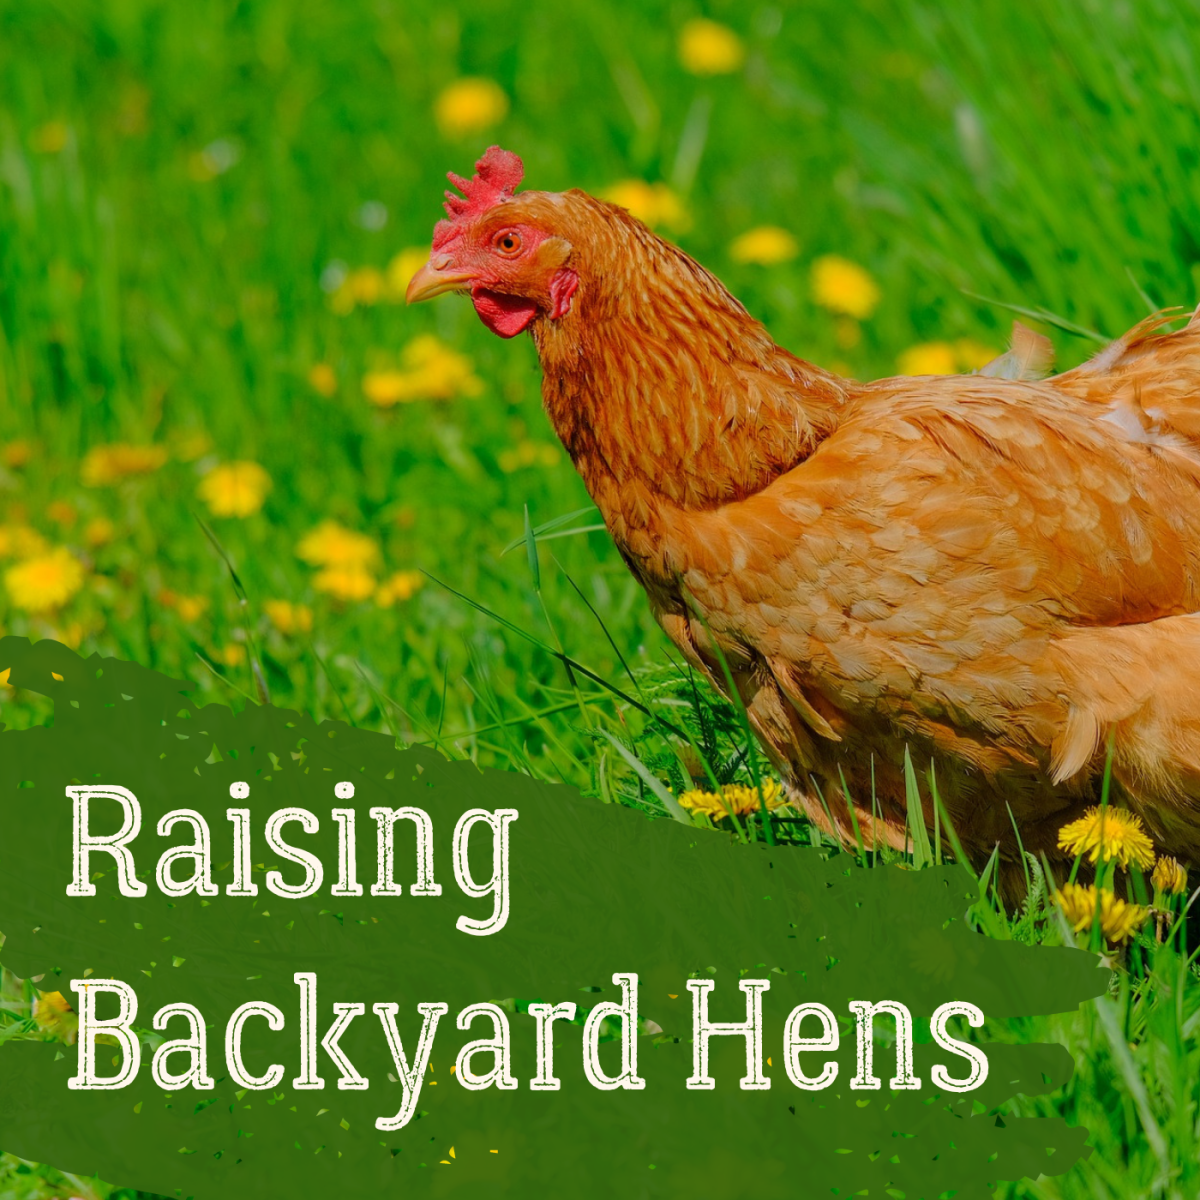 Get some tips for raising happy, healthy hens at home!